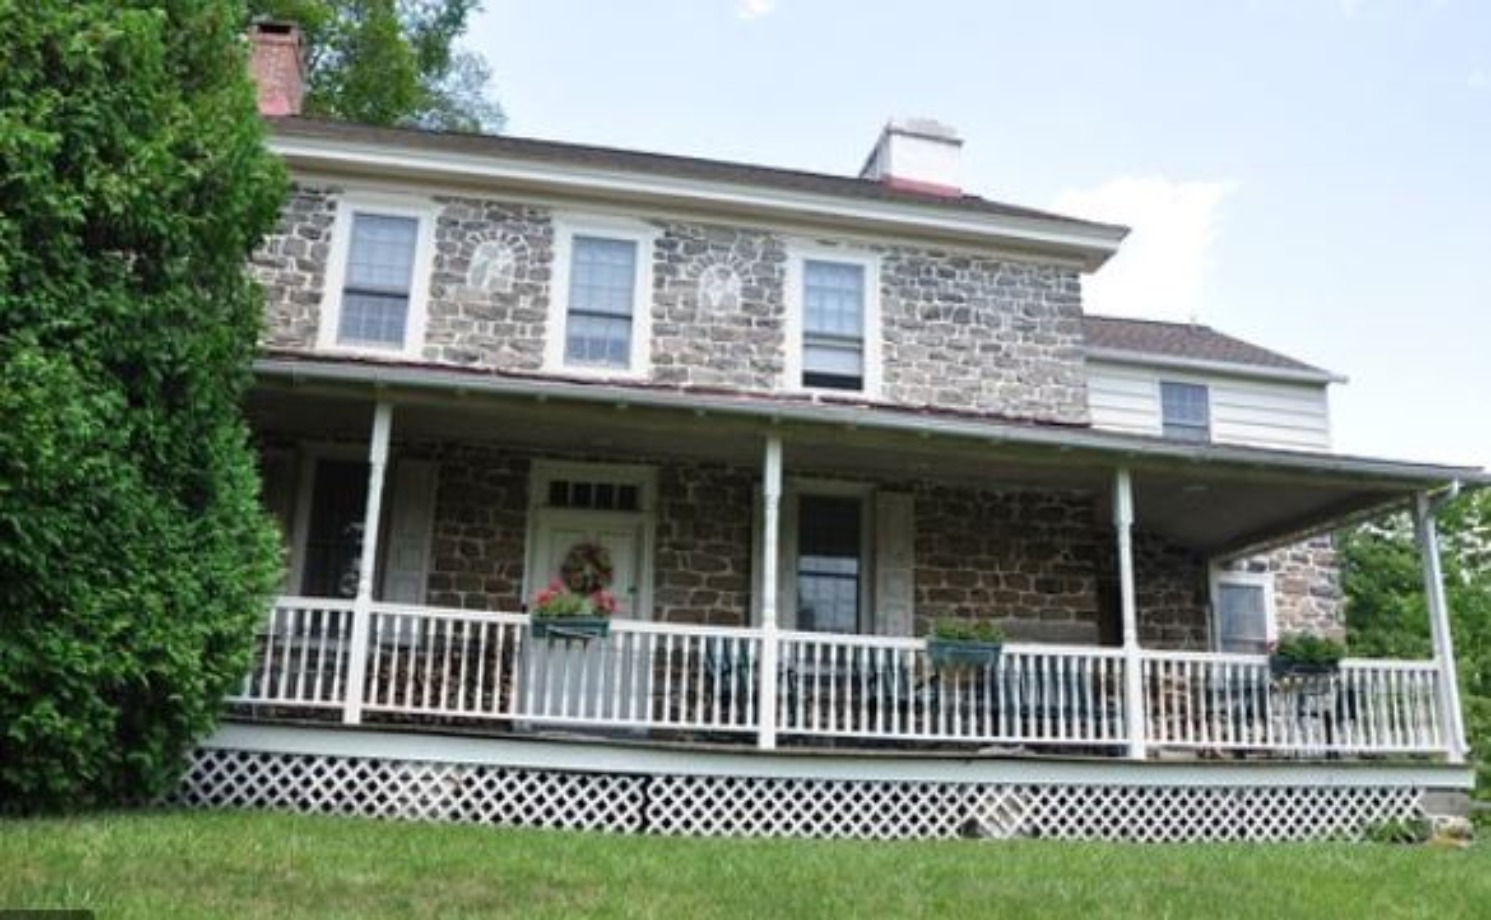 A group of people in front of a building at 1732 Folke Stone Bed and Breakfast.